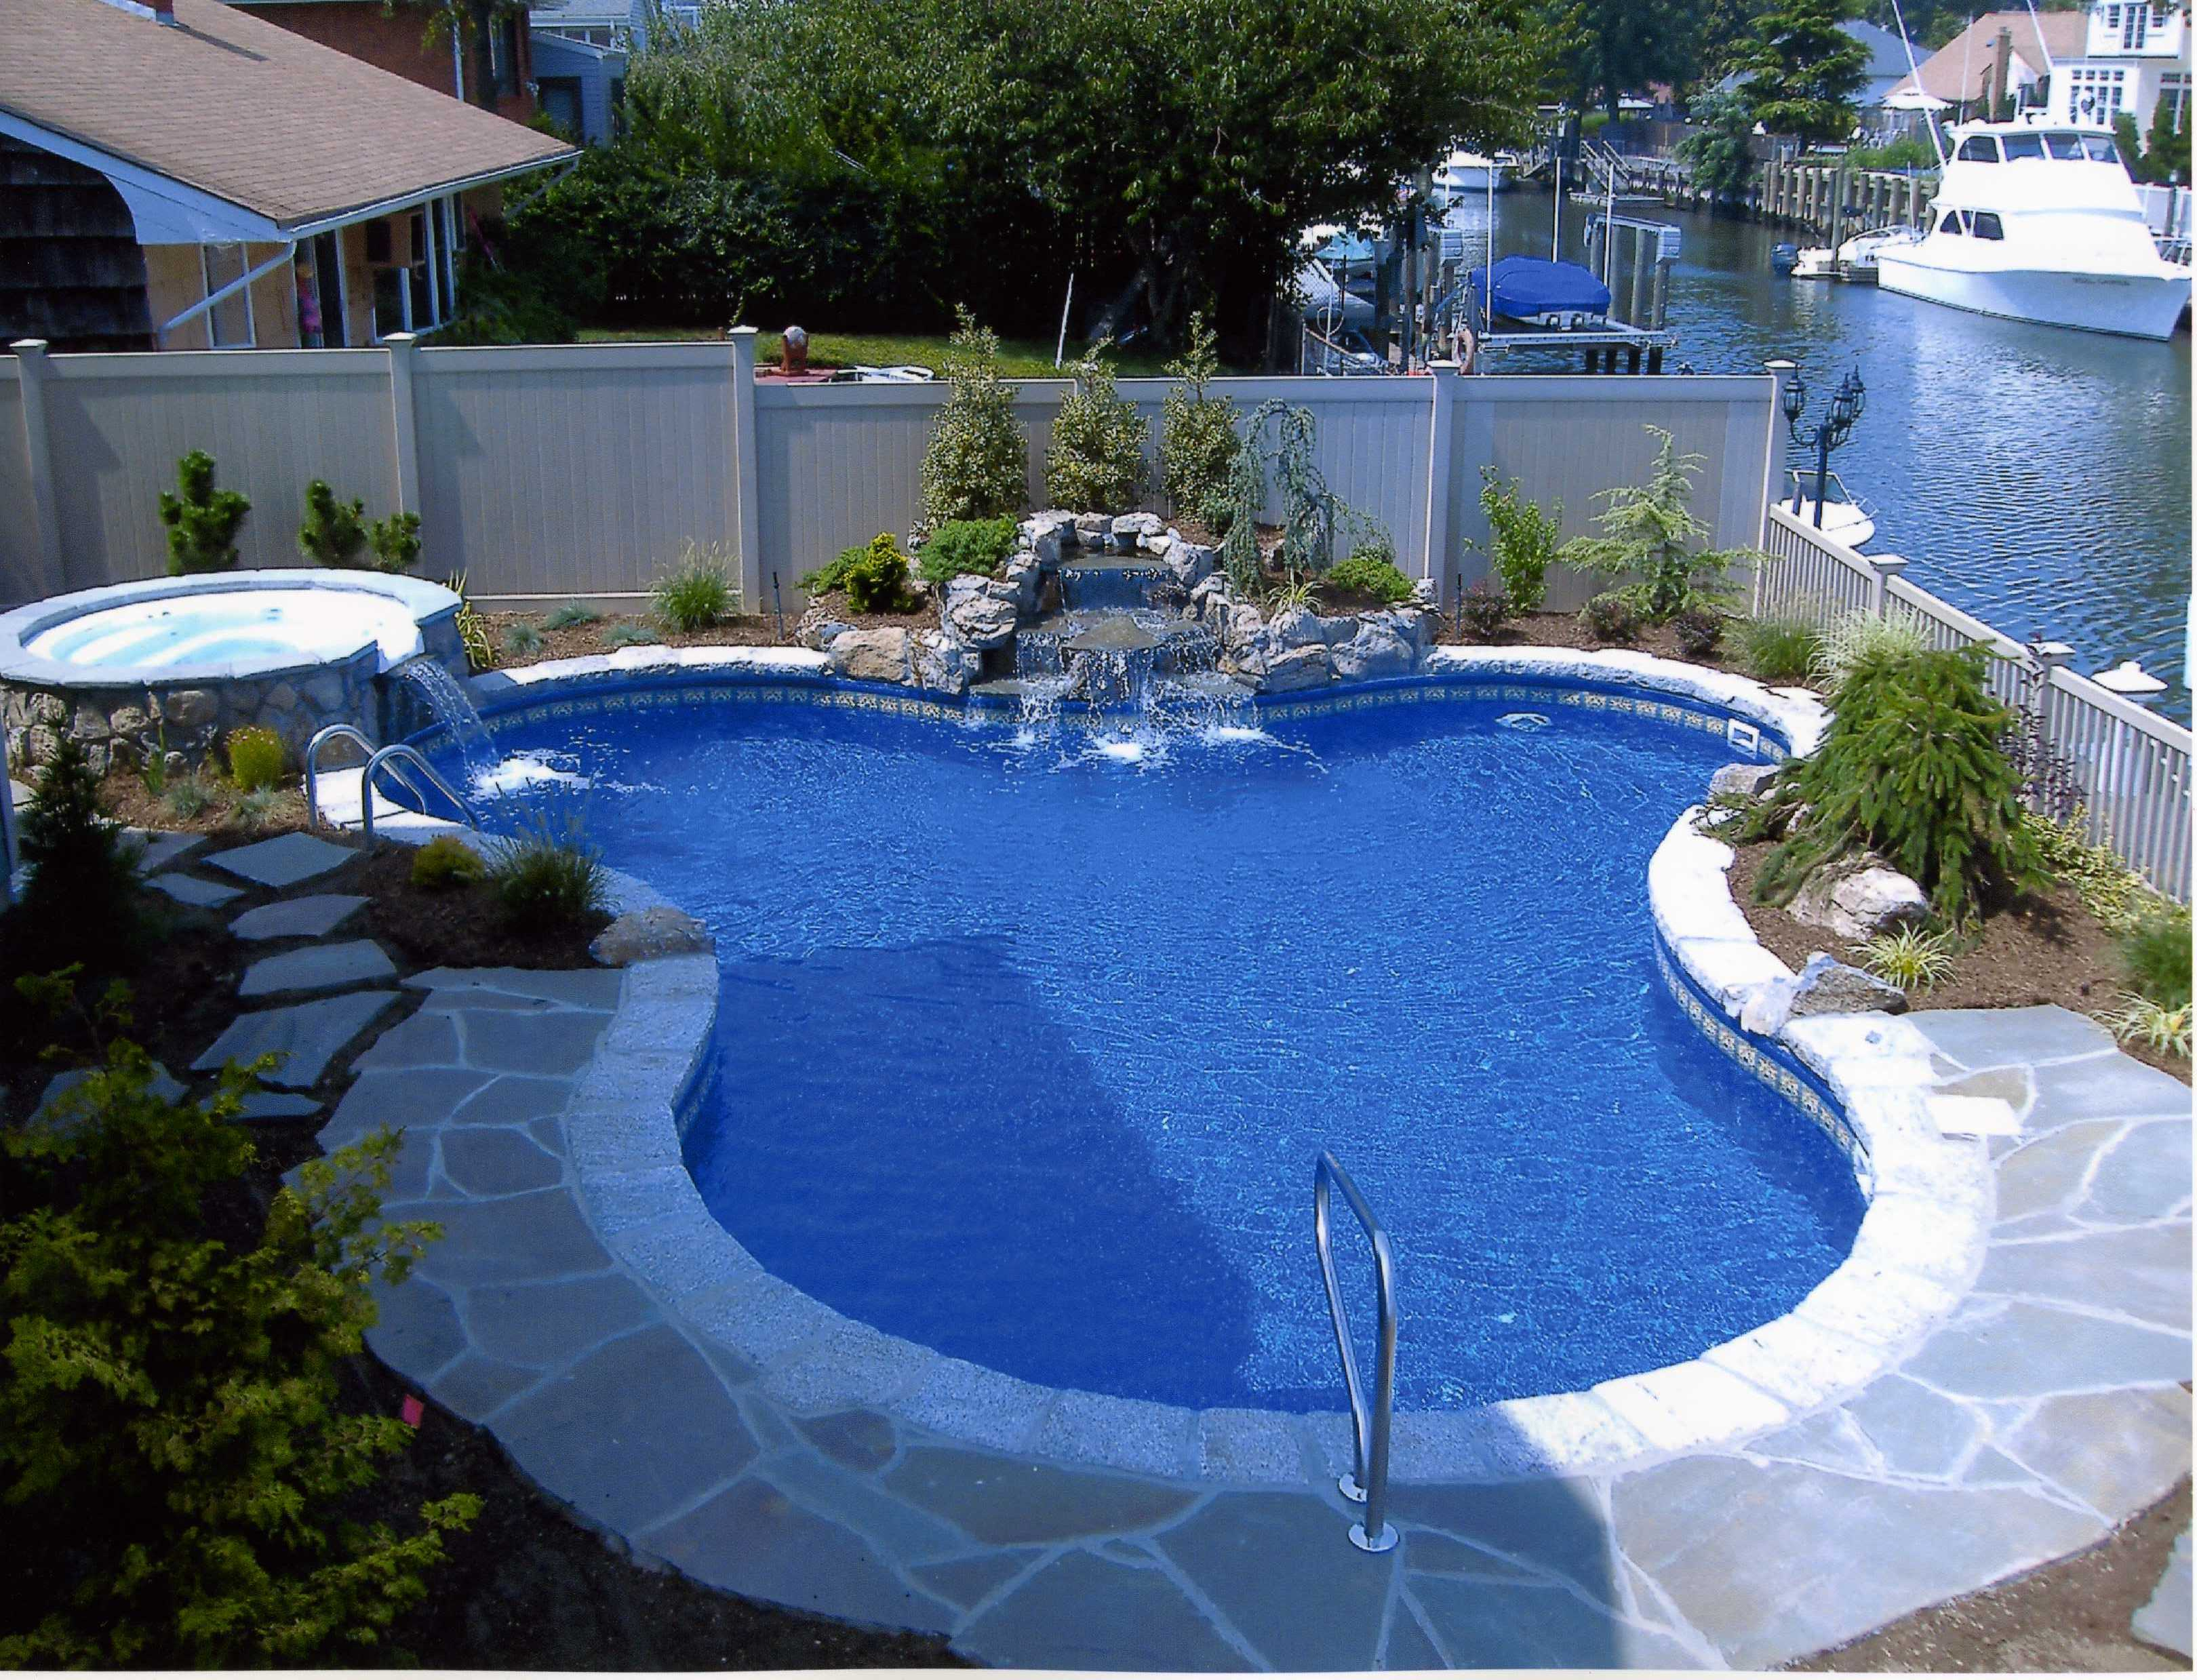 Backyard landscaping ideas swimming pool design for Fancy swimming pool designs